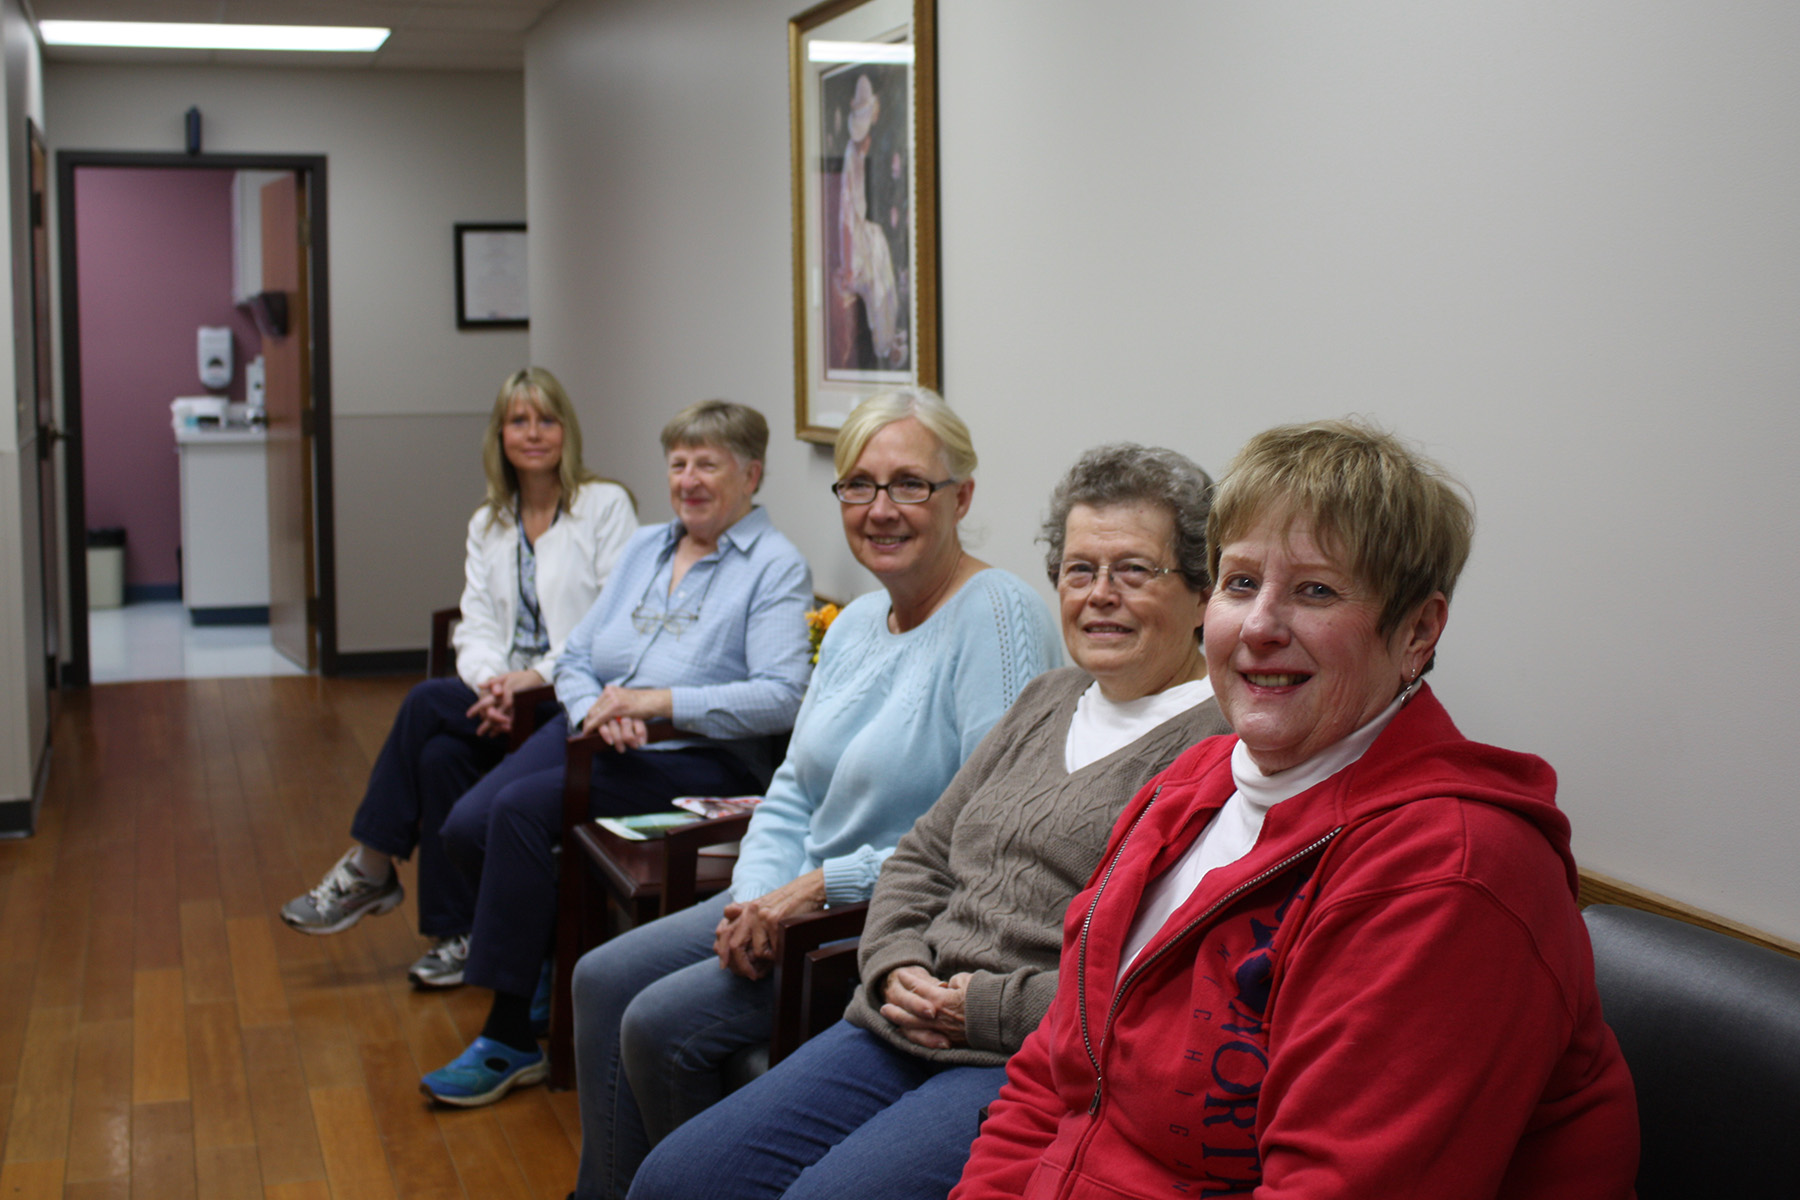 Pictured above displaying the new waiting room furniture in Specialty HealthCare Services are auxiliary members (right to left): Carleen Foster, Judy Hostetler, Billy DeWolf, Gerri Smith, and Specialty HealthCare Services Manager Julie McCracken.